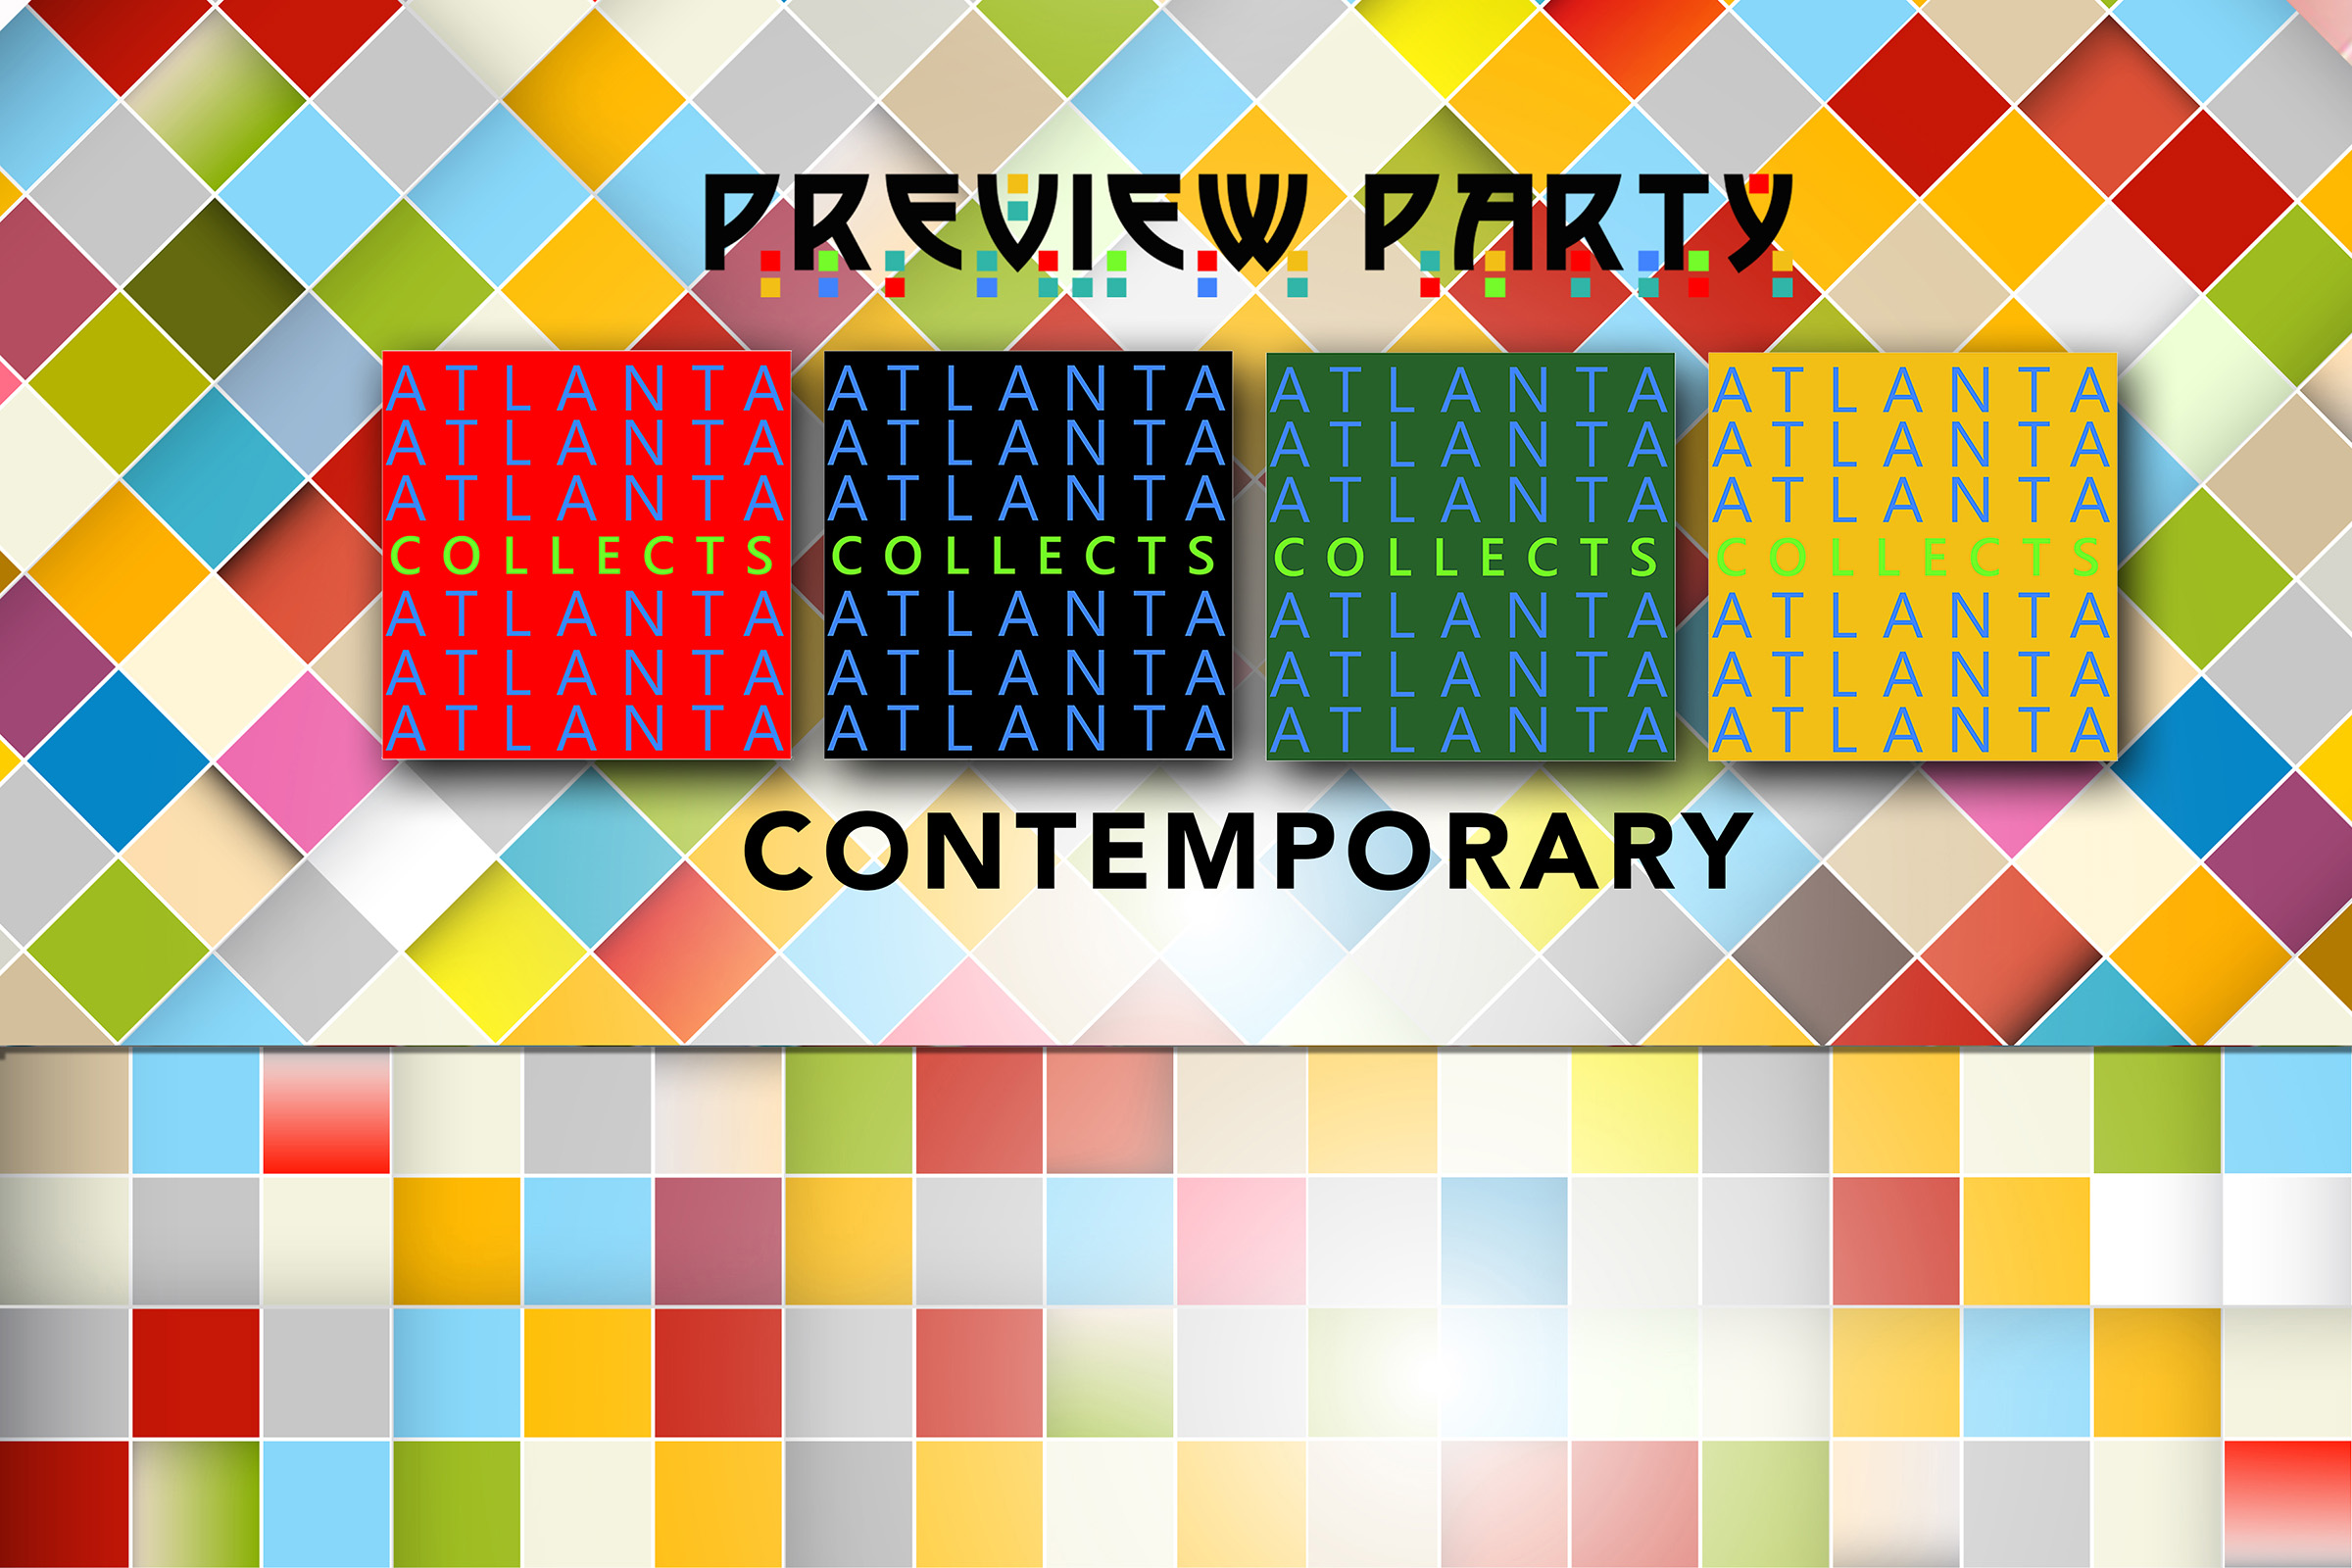 Atlanta Collects Contemporary Preview Party